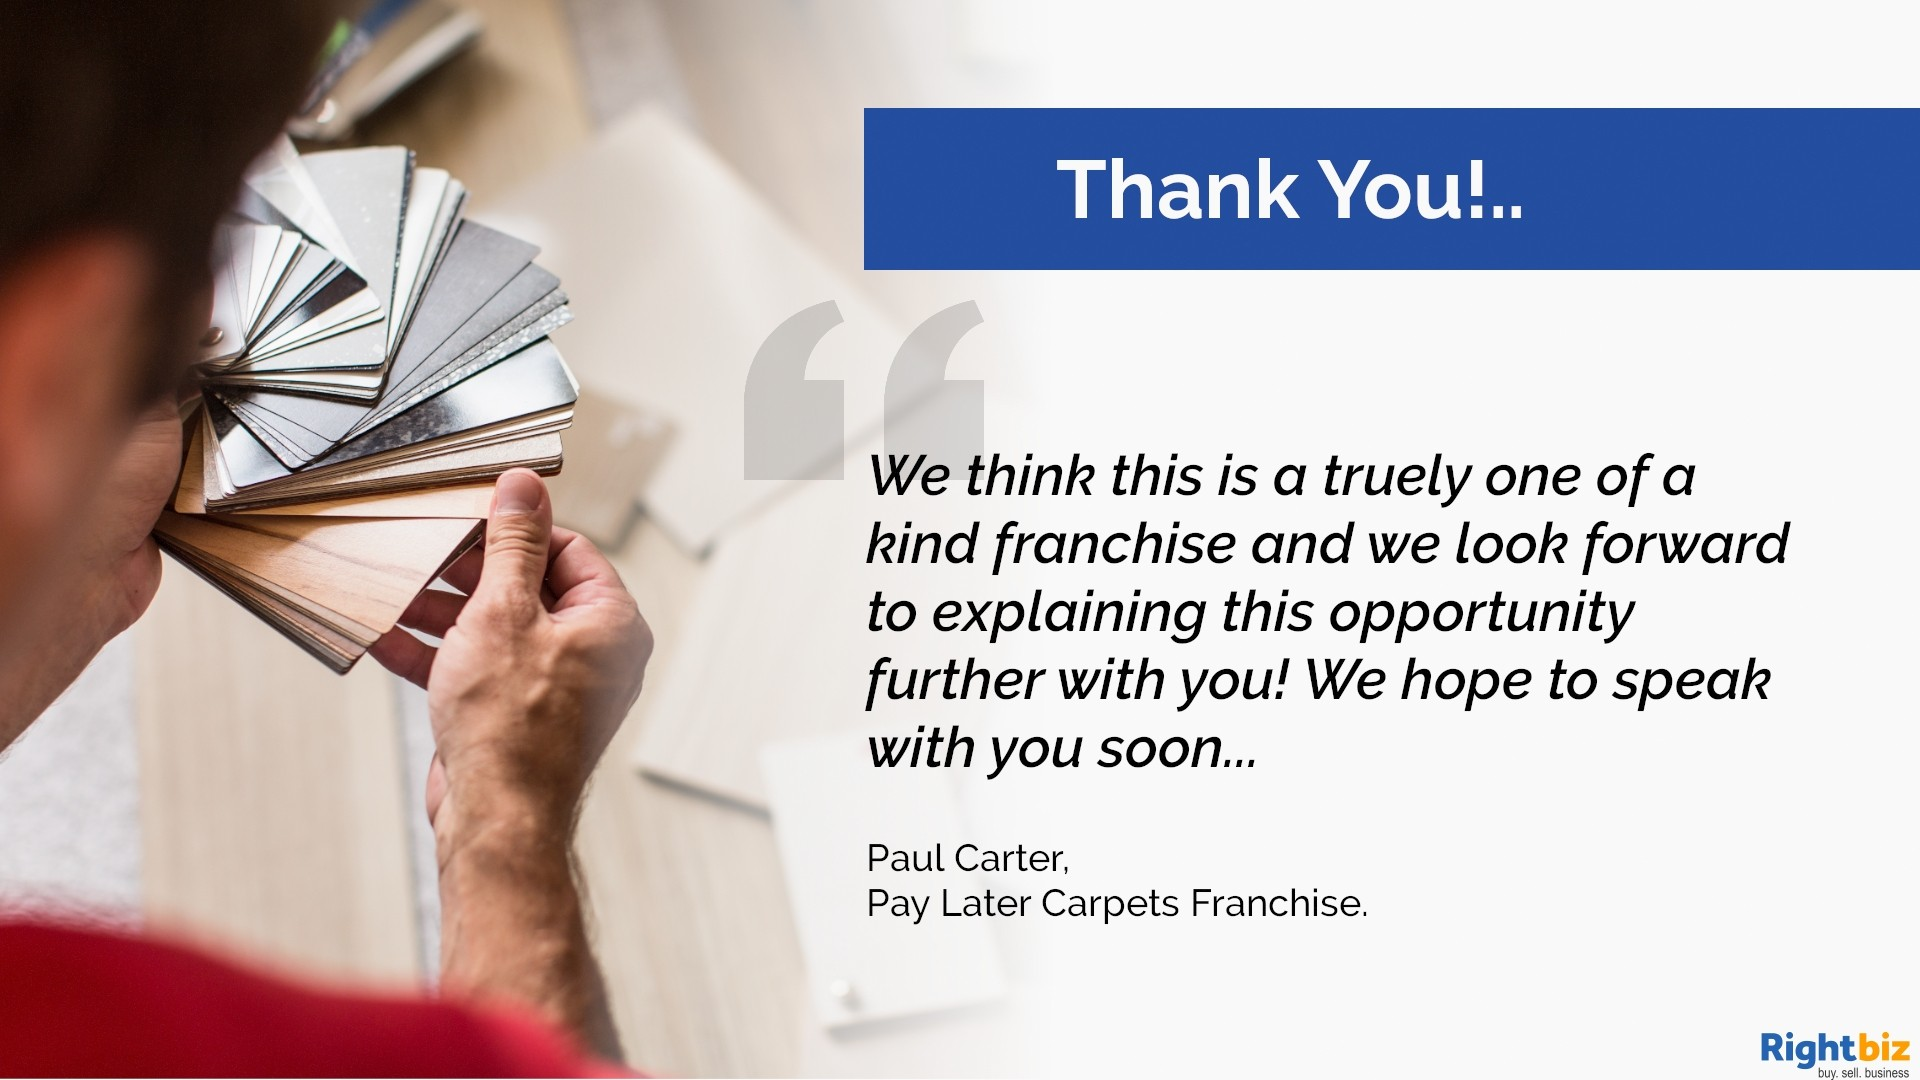 Pay Later Carpets Franchise Derry Our First Franchisee Made £11,000+ Profit in Month One - Image 7